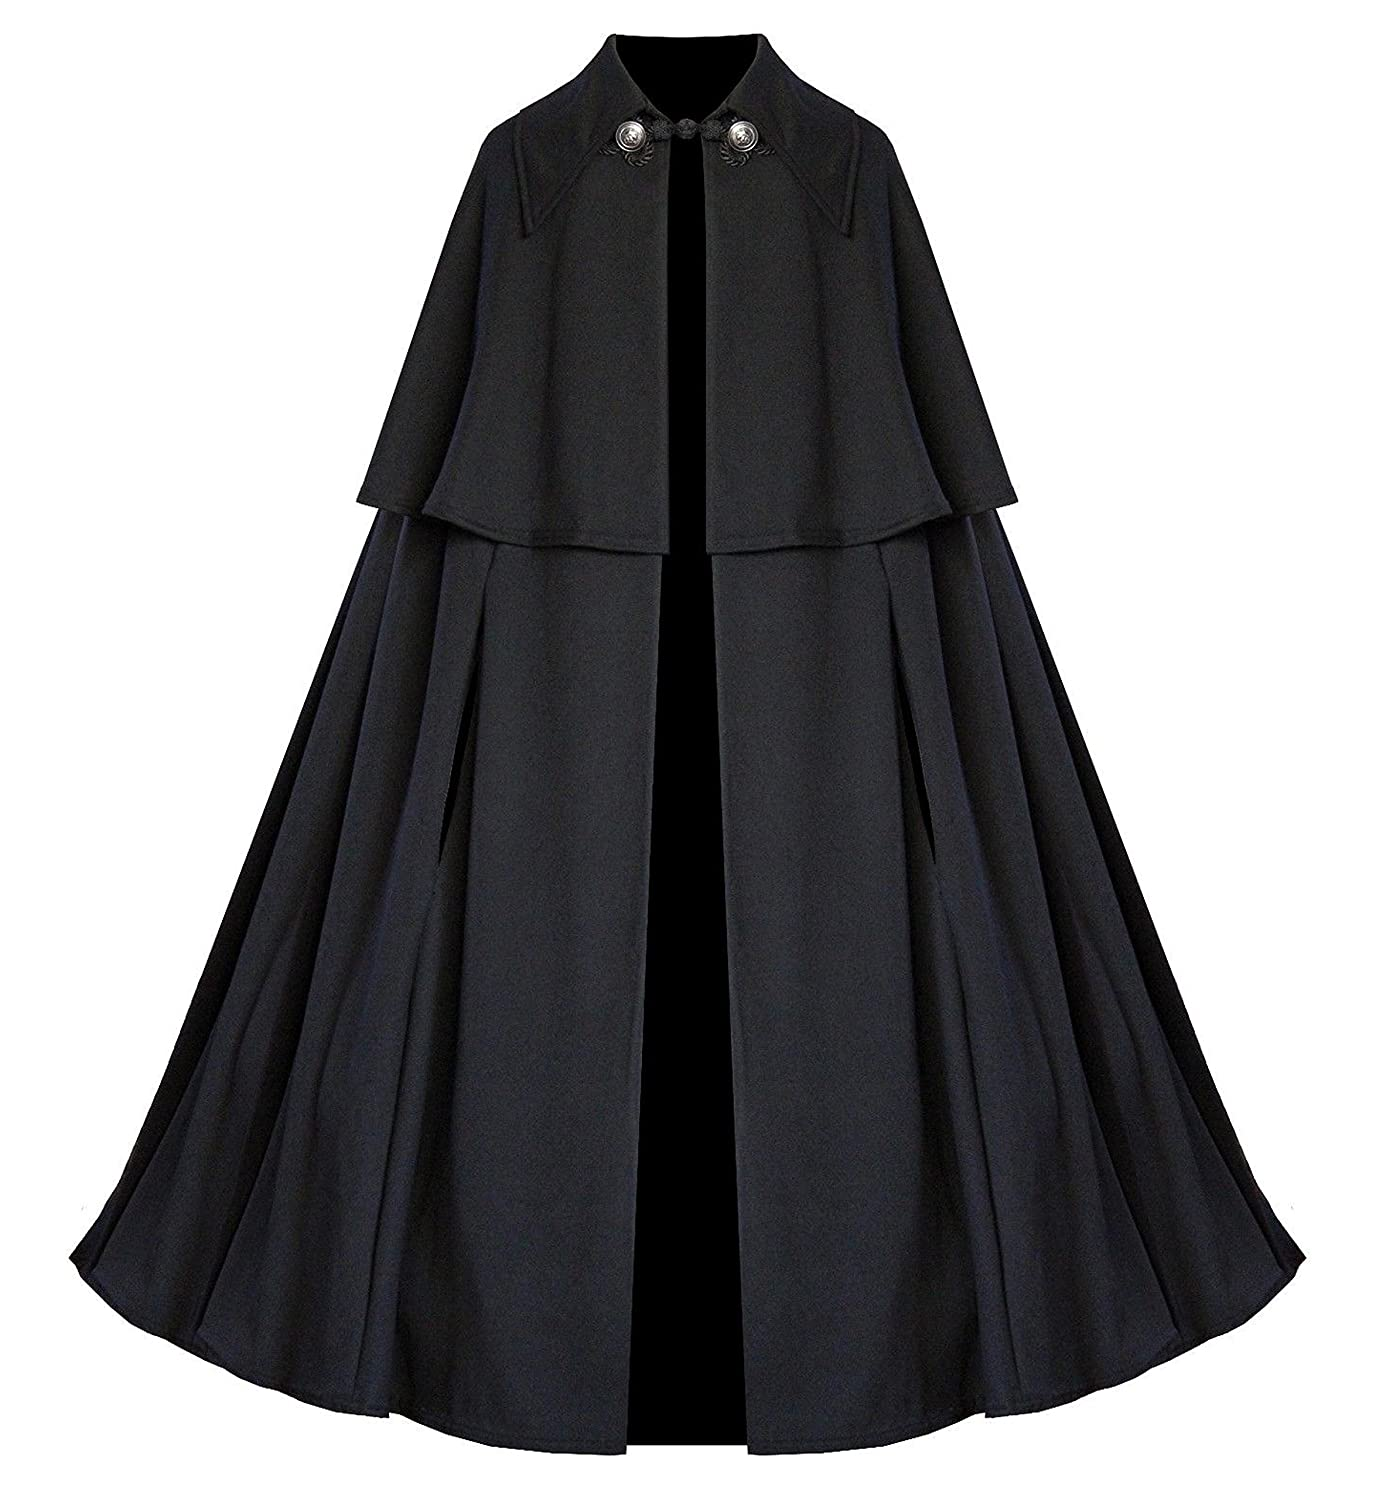 593bb3afae9 Ladies Medieval Renaissance Cloaks | Deluxe Theatrical Quality Adult ...